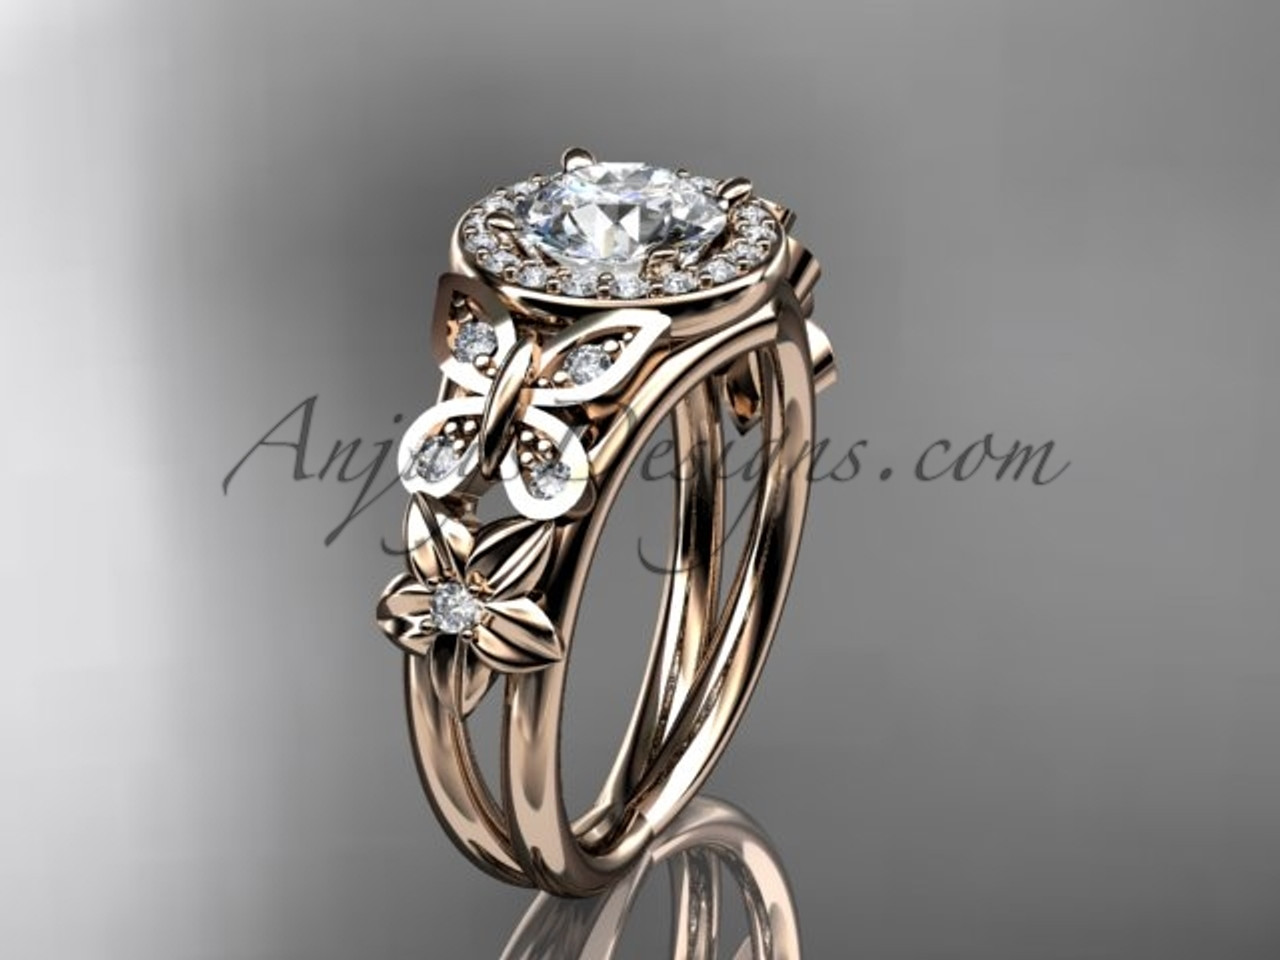 ring pinterest blossom krikawa made rose and images best just floral you metals rings mokume in for the engagement on